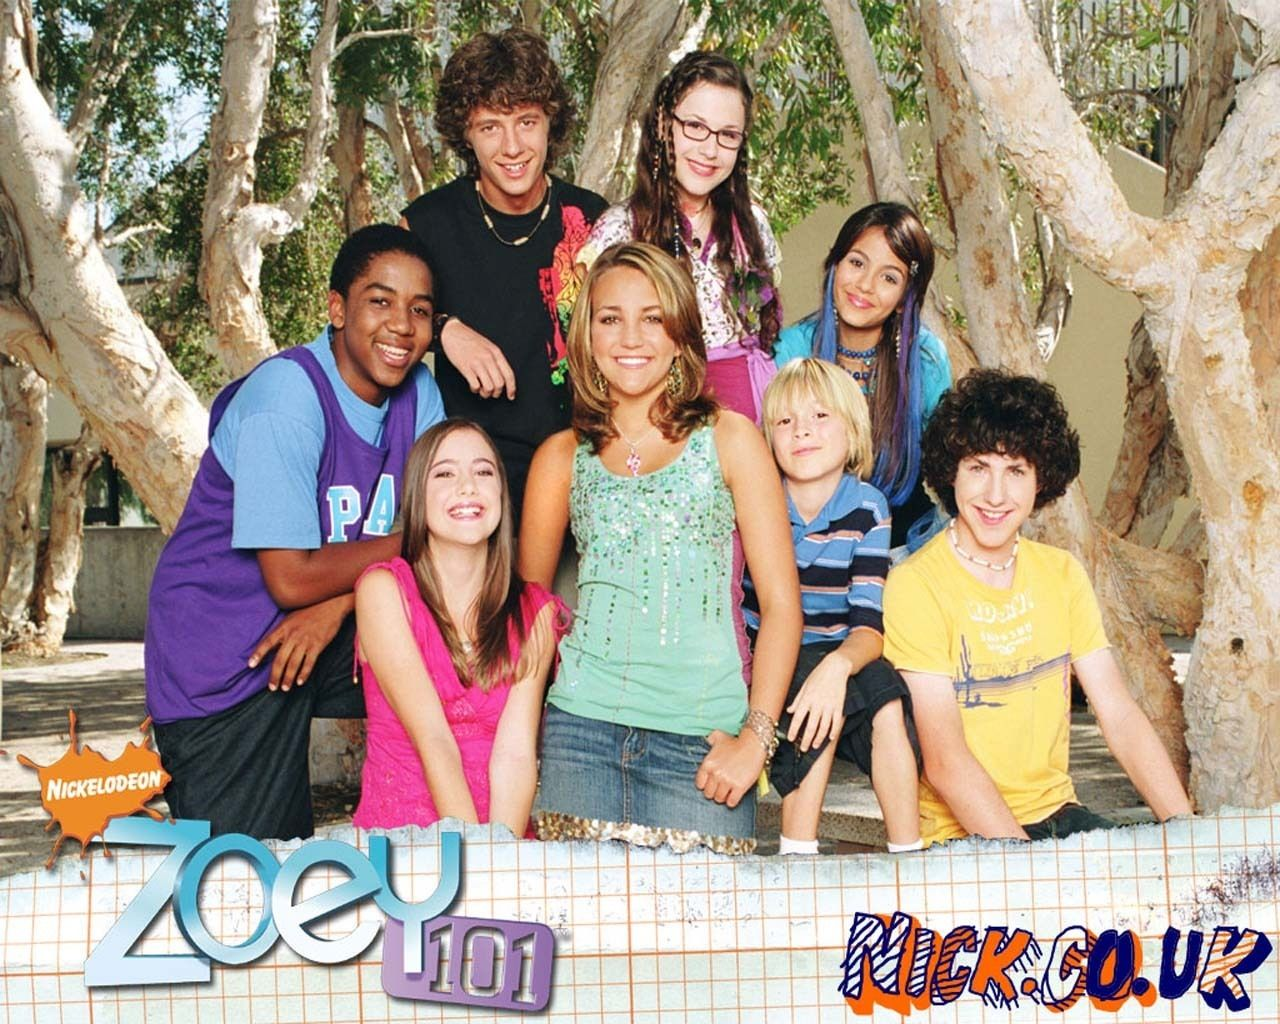 For anyone who watches Zoey 101??